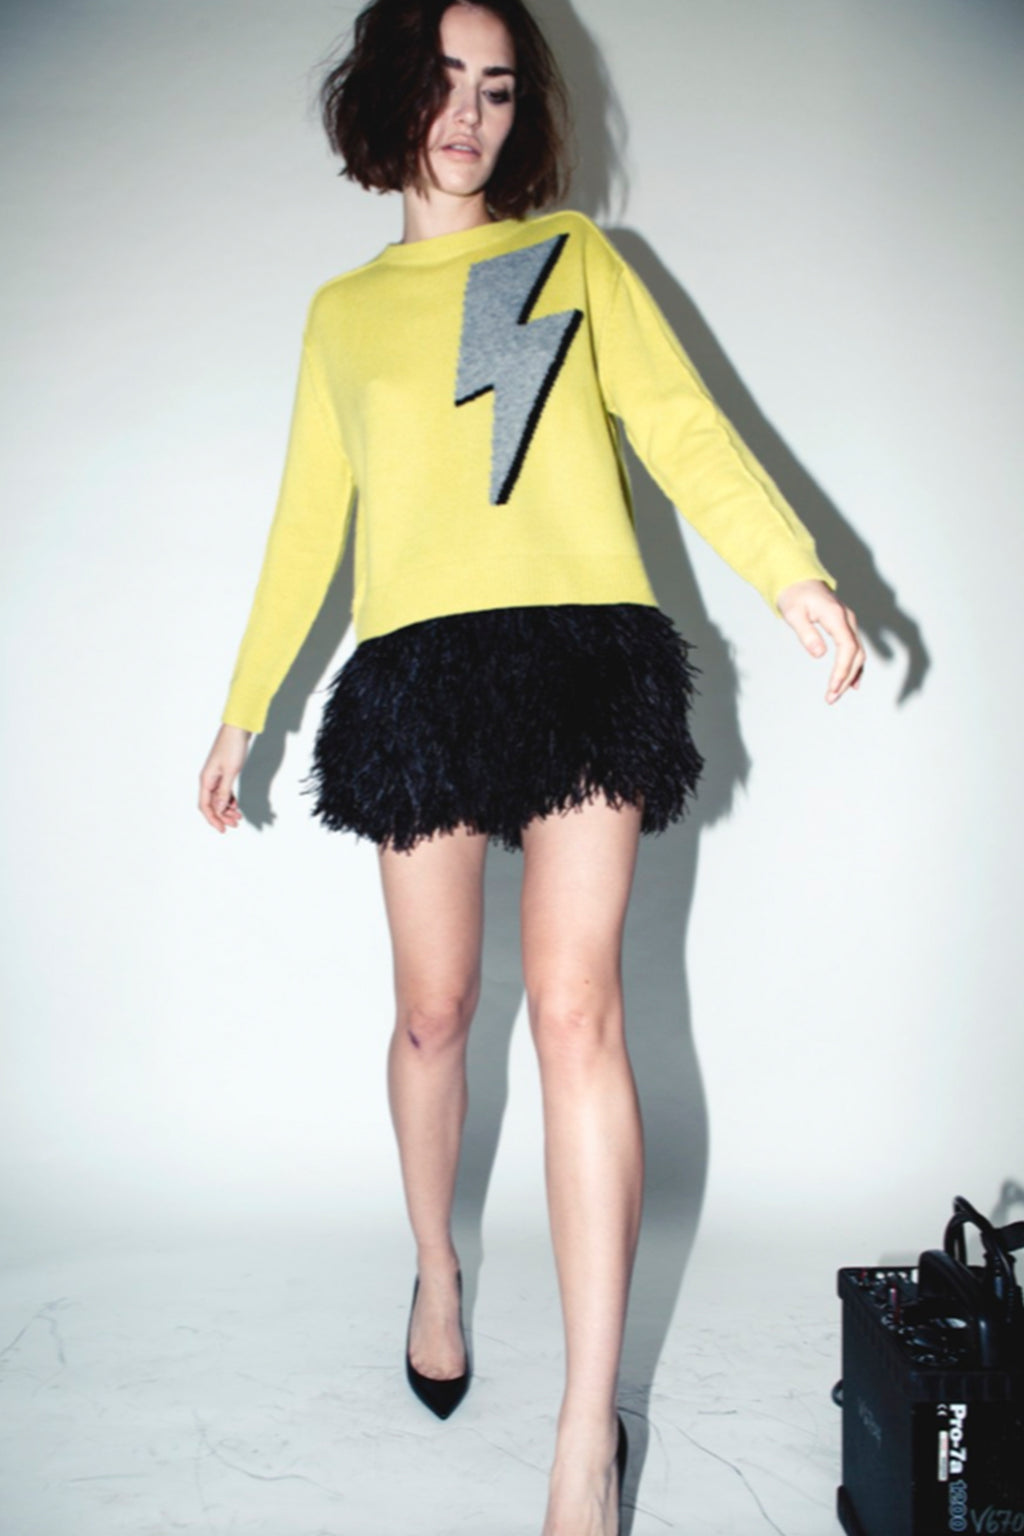 OSTRICH SKIRT, Skirt - Robert Rodriguez Women's Fashion Collection